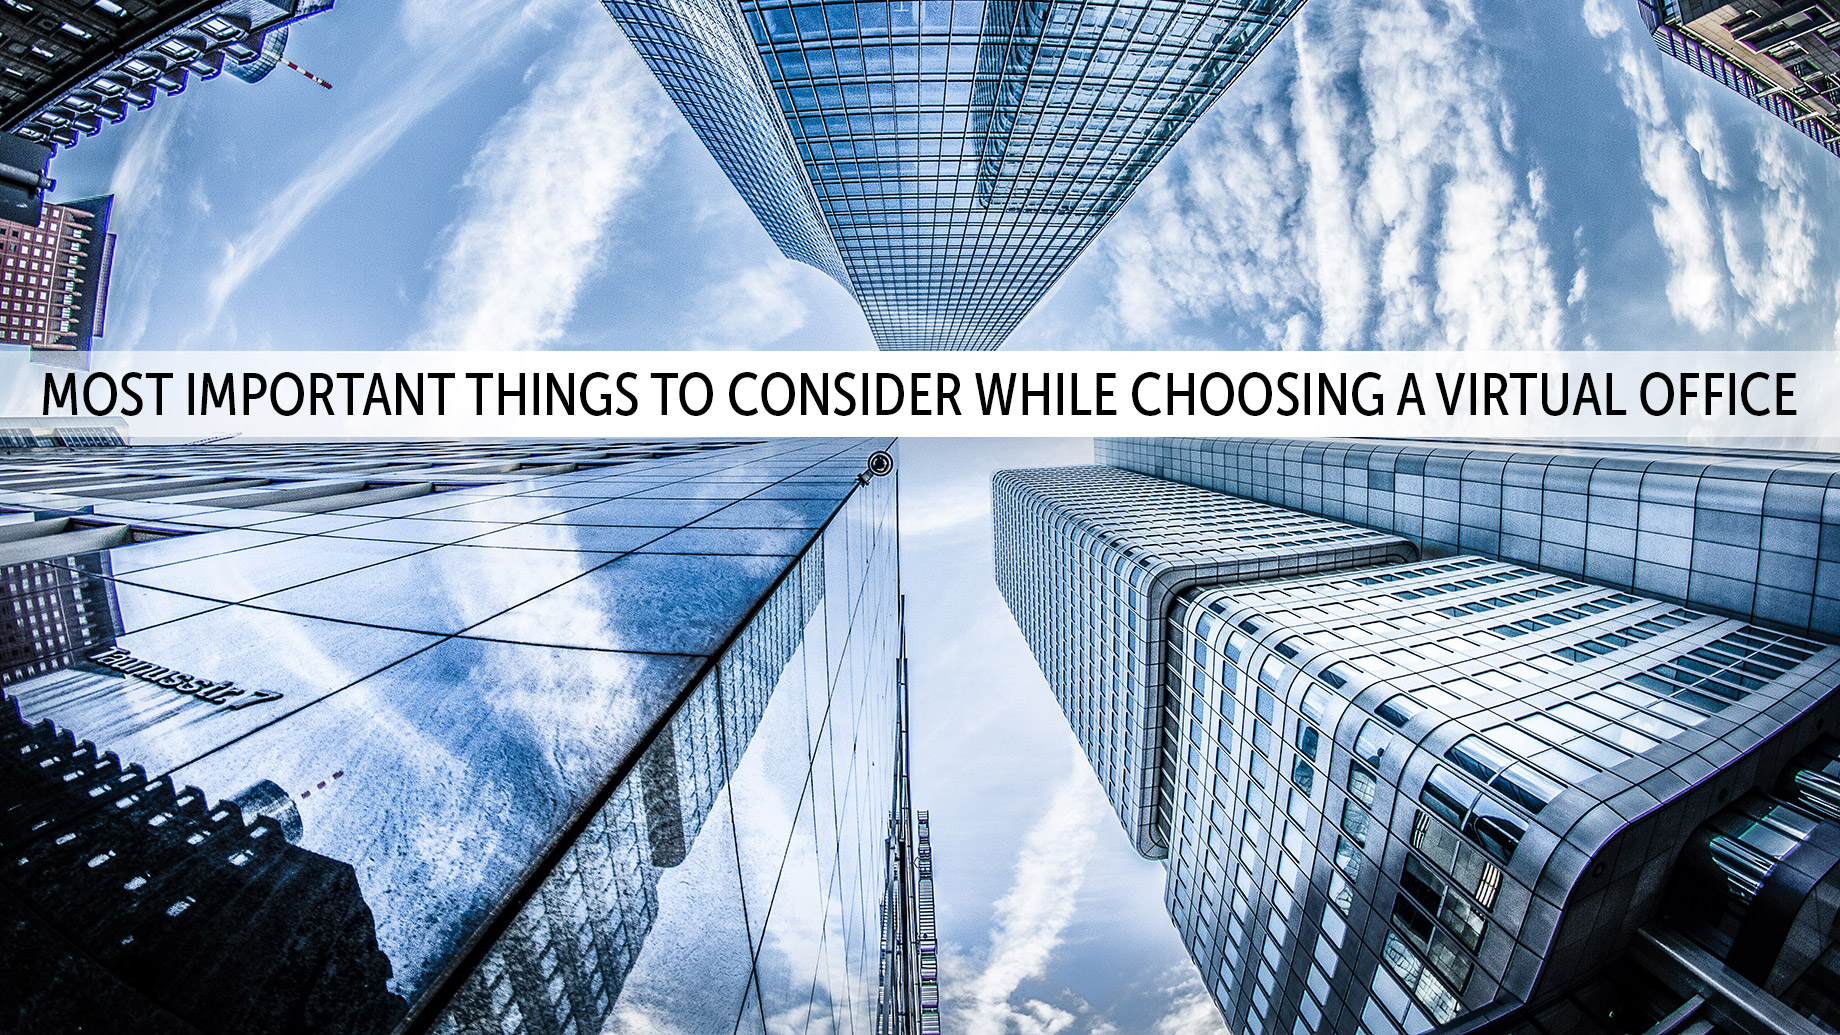 Most Important Things To Consider While Choosing A Virtual Office